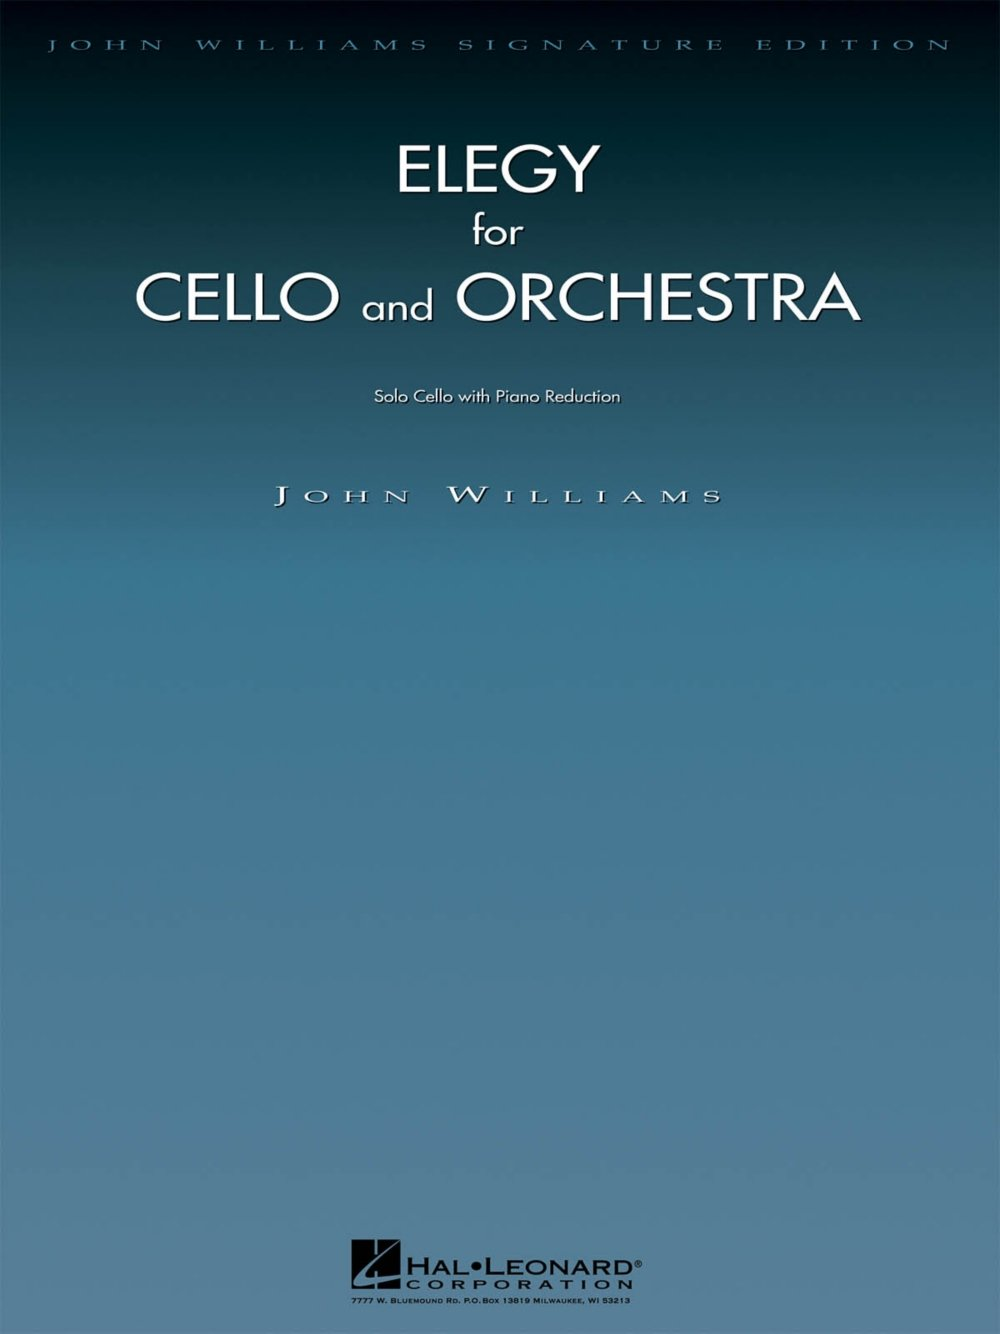 hal-leonard-elegy-for-cello-and-orchestra-john-williams-signature-edition-strings-series